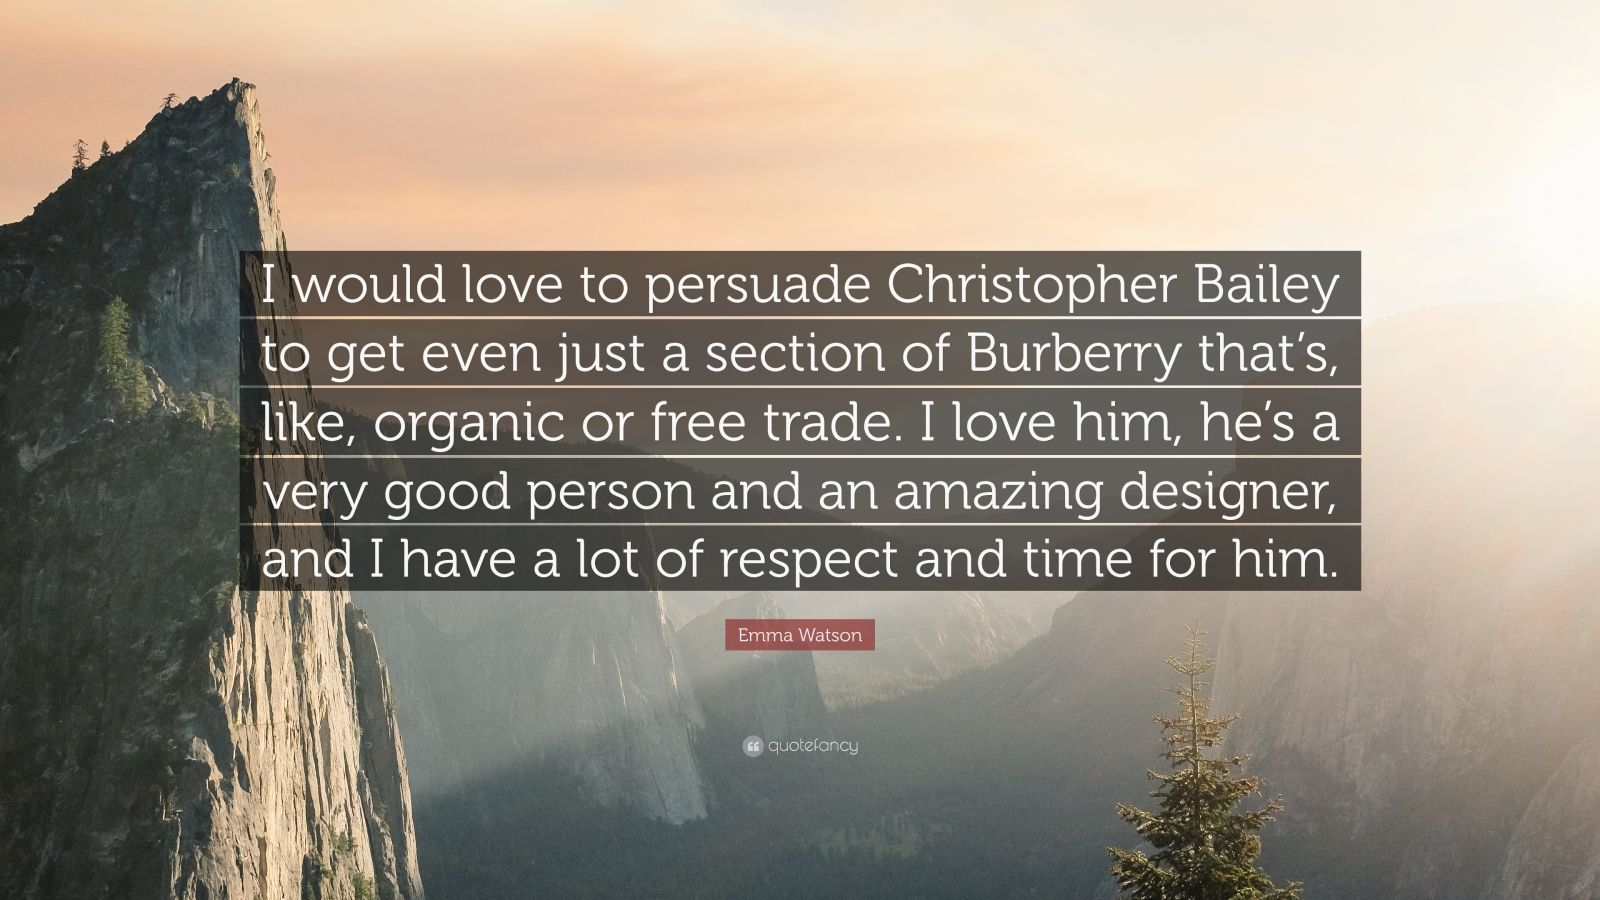 """Emma Watson Quote: """"I would love to persuade Christopher Bailey to get even just a section of Burberry that's, like, organic or free trade. I love him, he's a very good person and an amazing designer, and I have a lot of respect and time for him."""""""